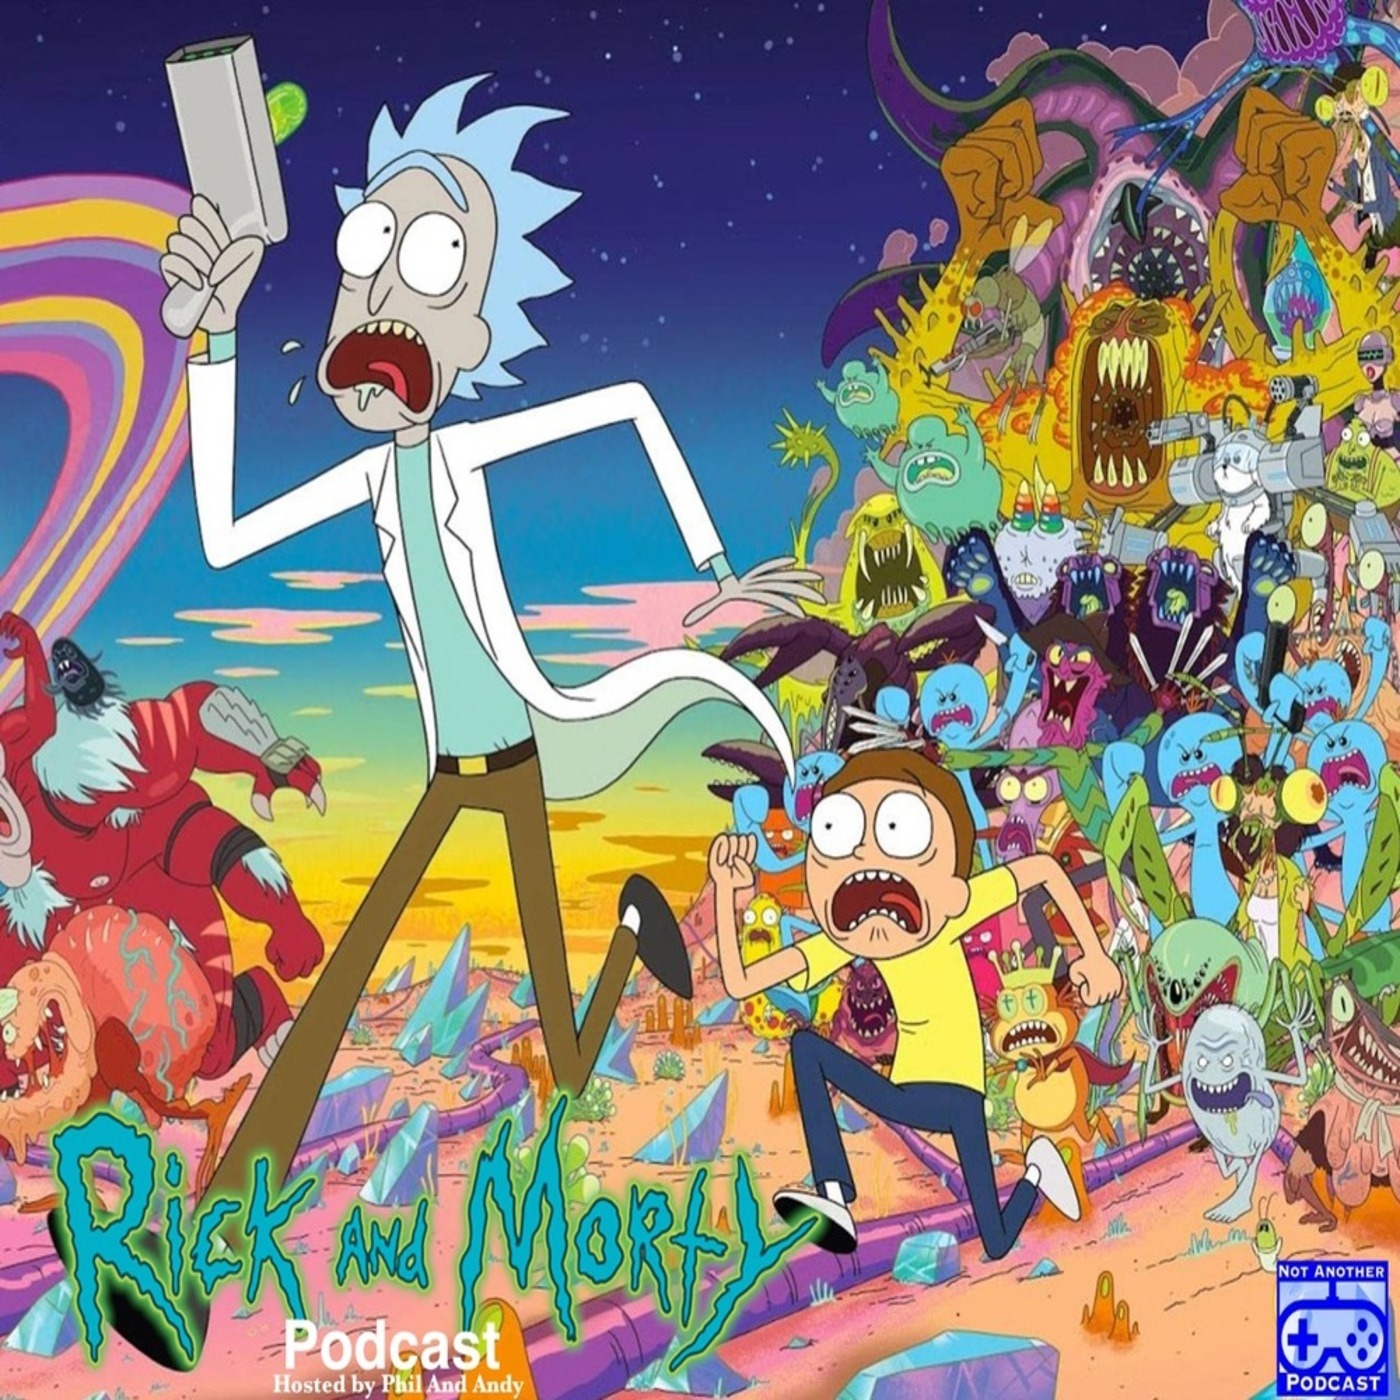 Rick and Morty Podcast Podcast - Listen, Reviews, Charts - Chartable